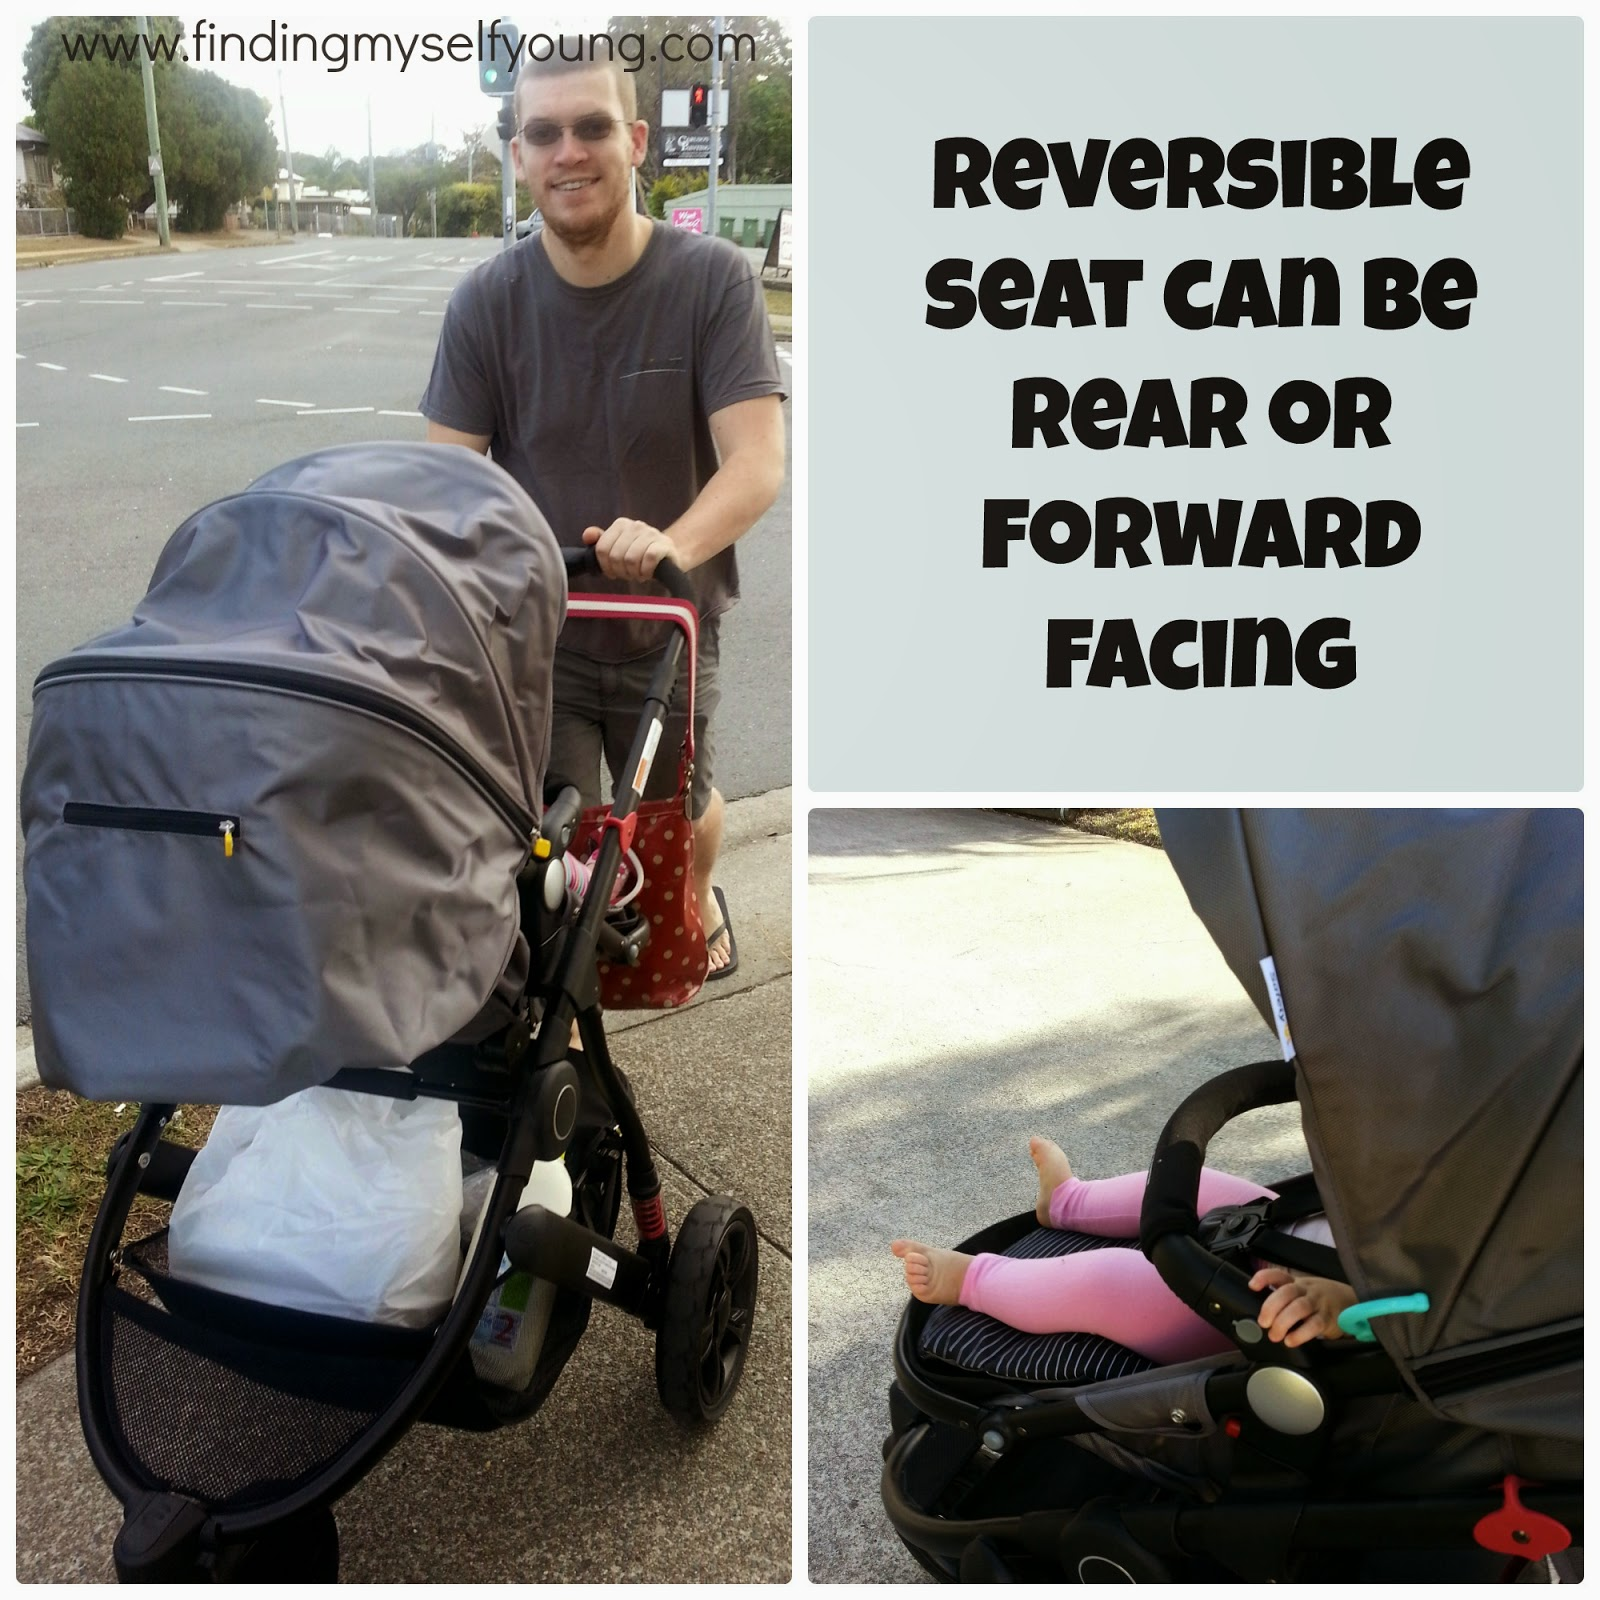 Safety 1st Wanderer pram reversible seat